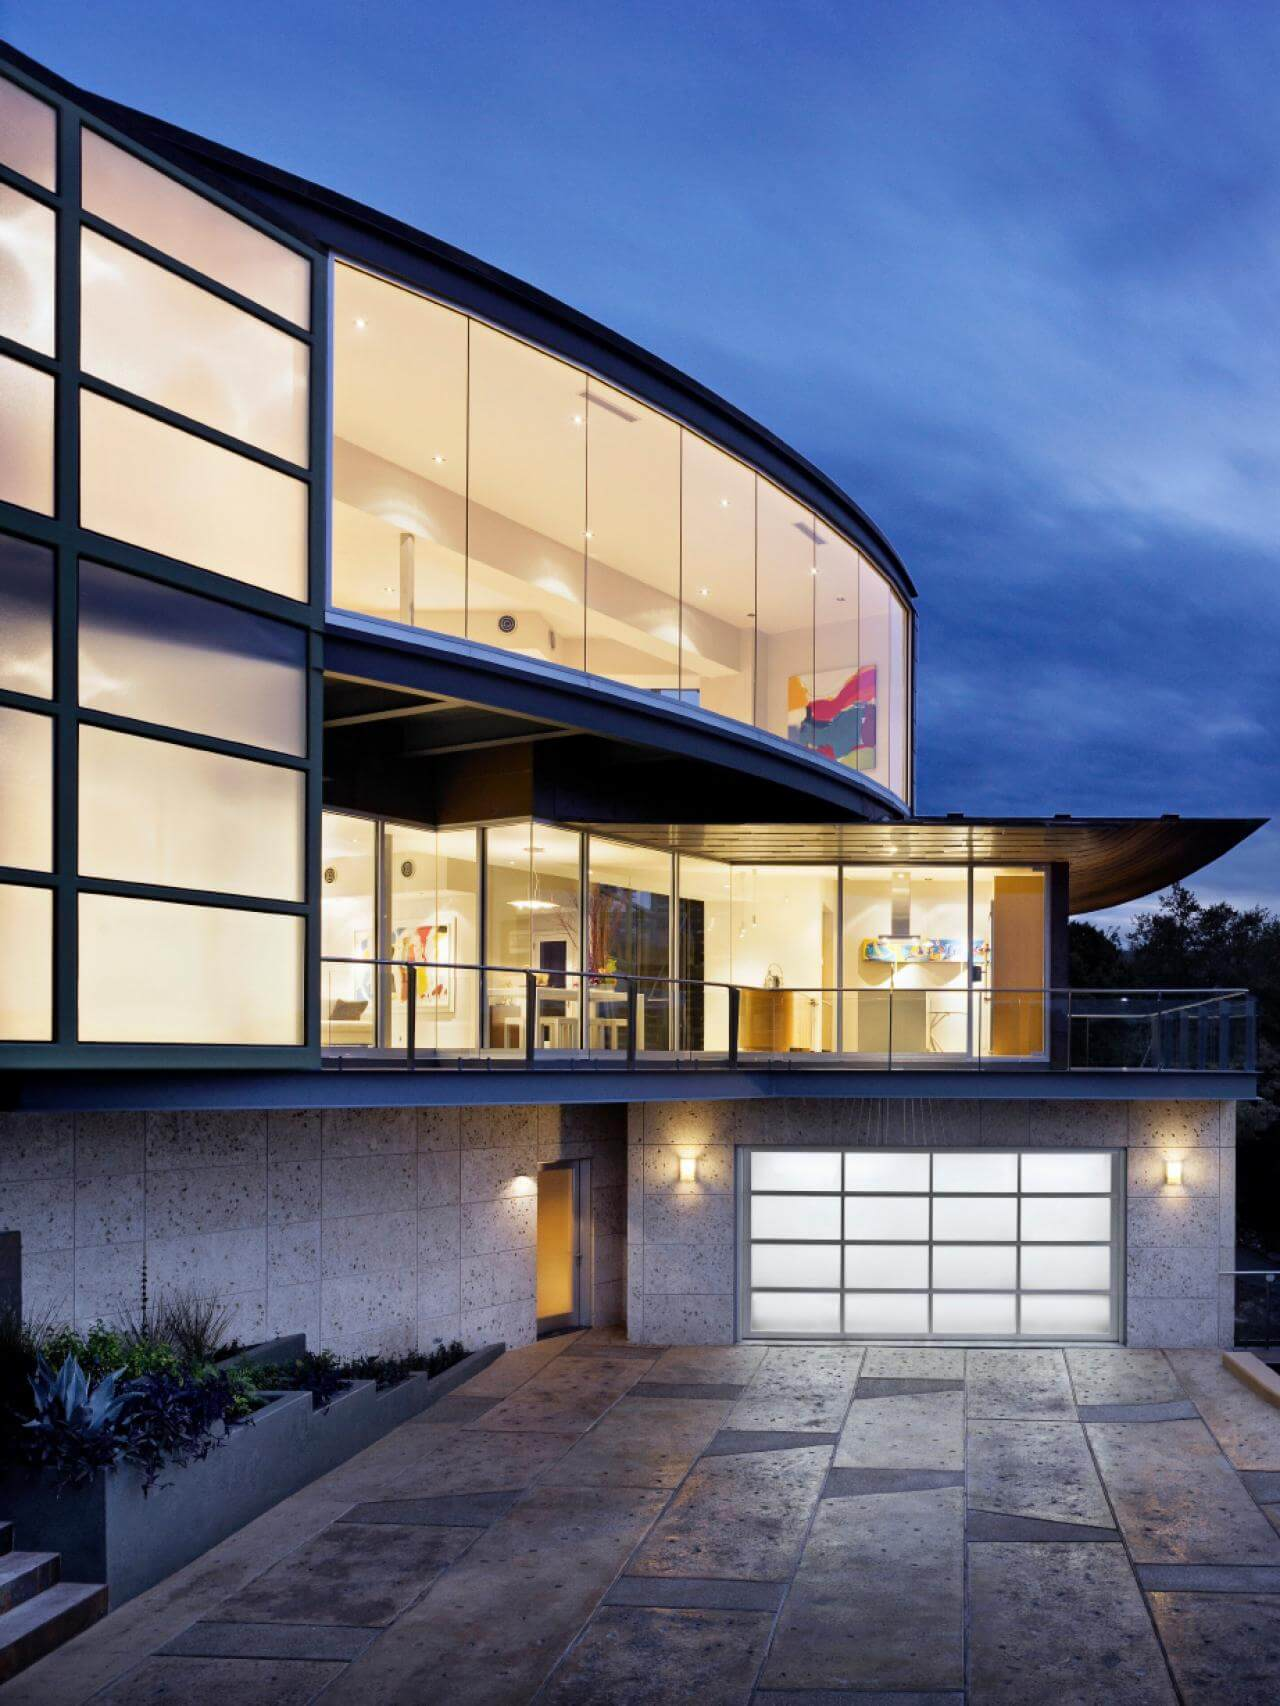 Crazy glass garage features